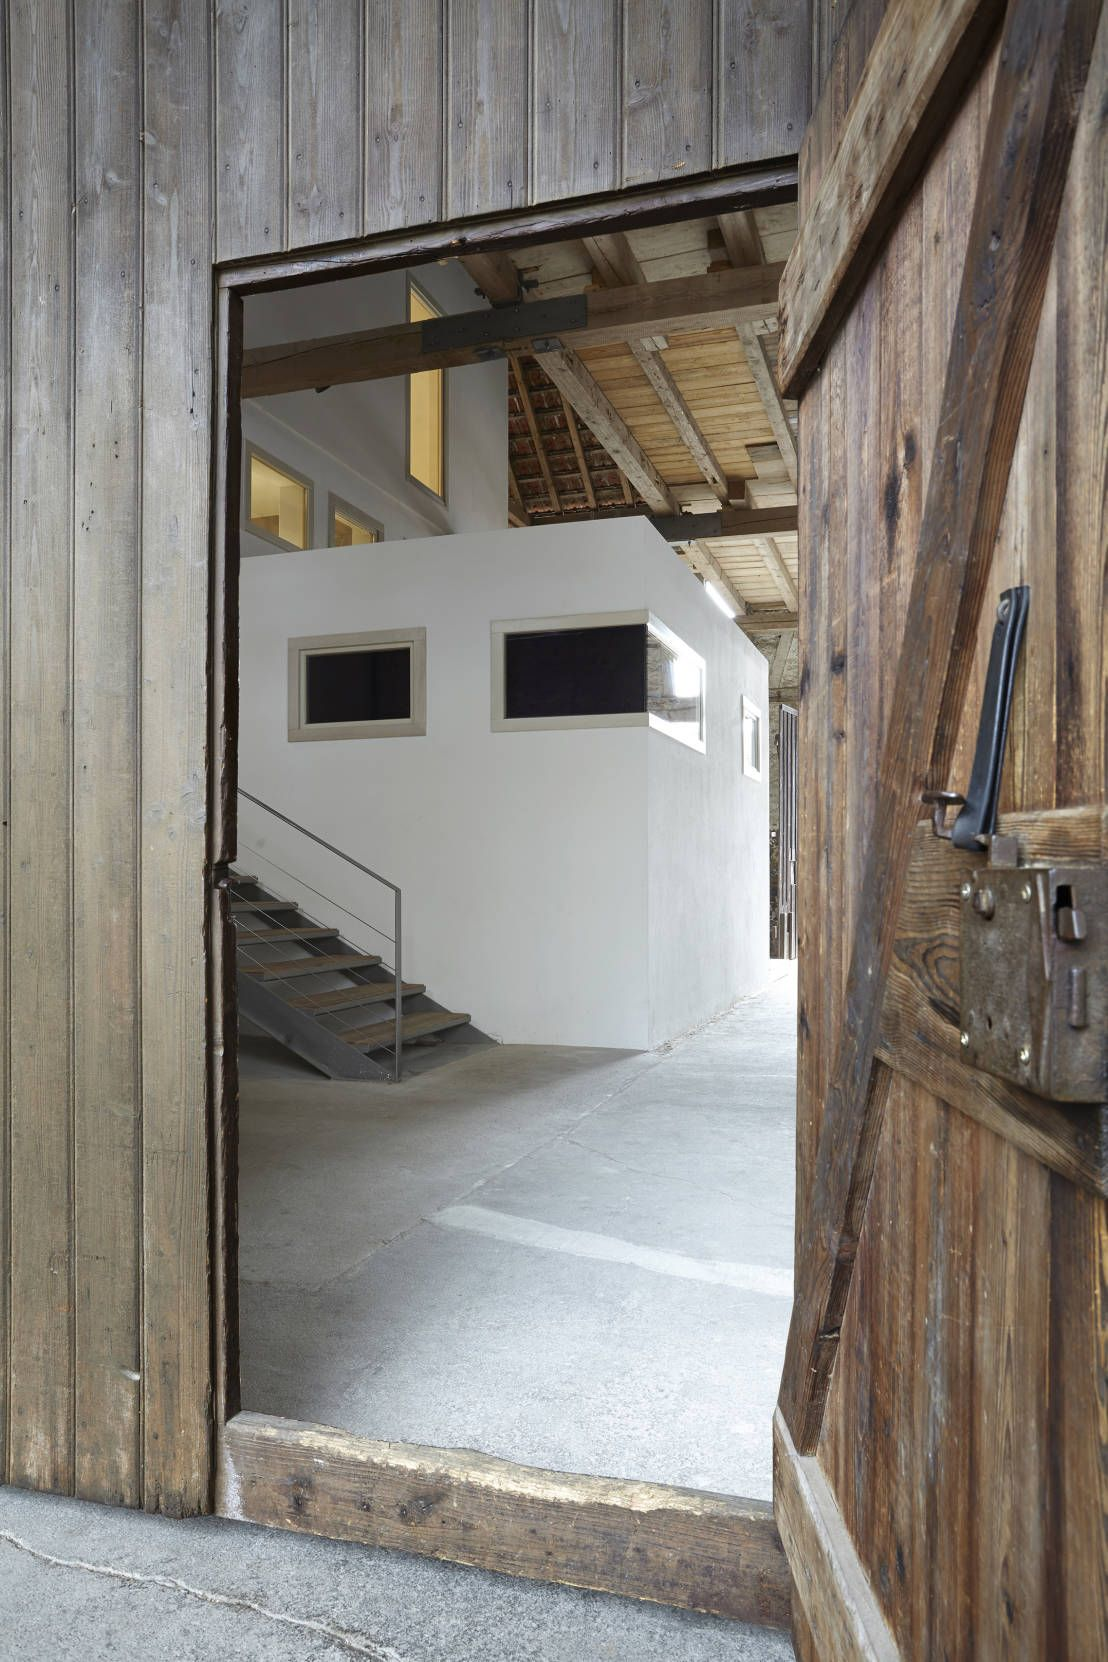 Modernes Haus in einer alten Scheune | FARMERS LOVE RENOVATION